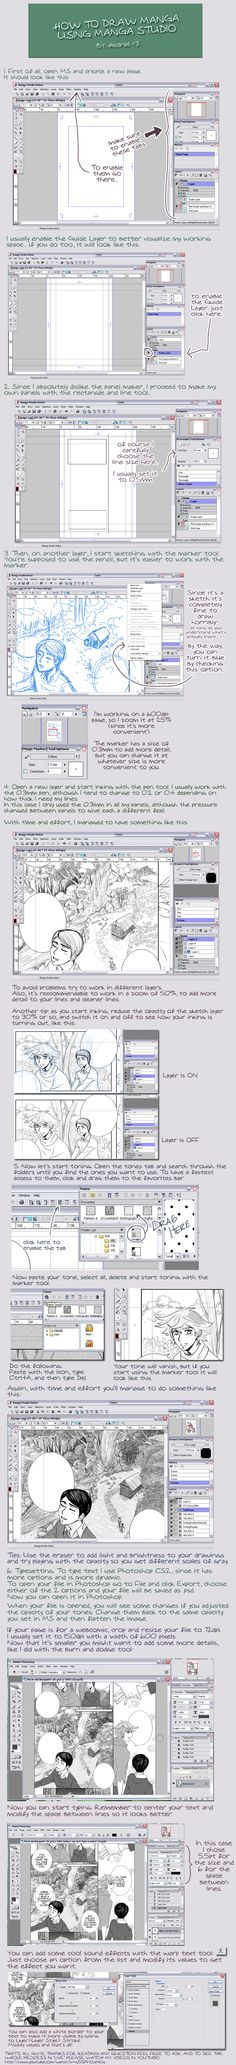 manga studio tutorial by *Heldrad on deviantART